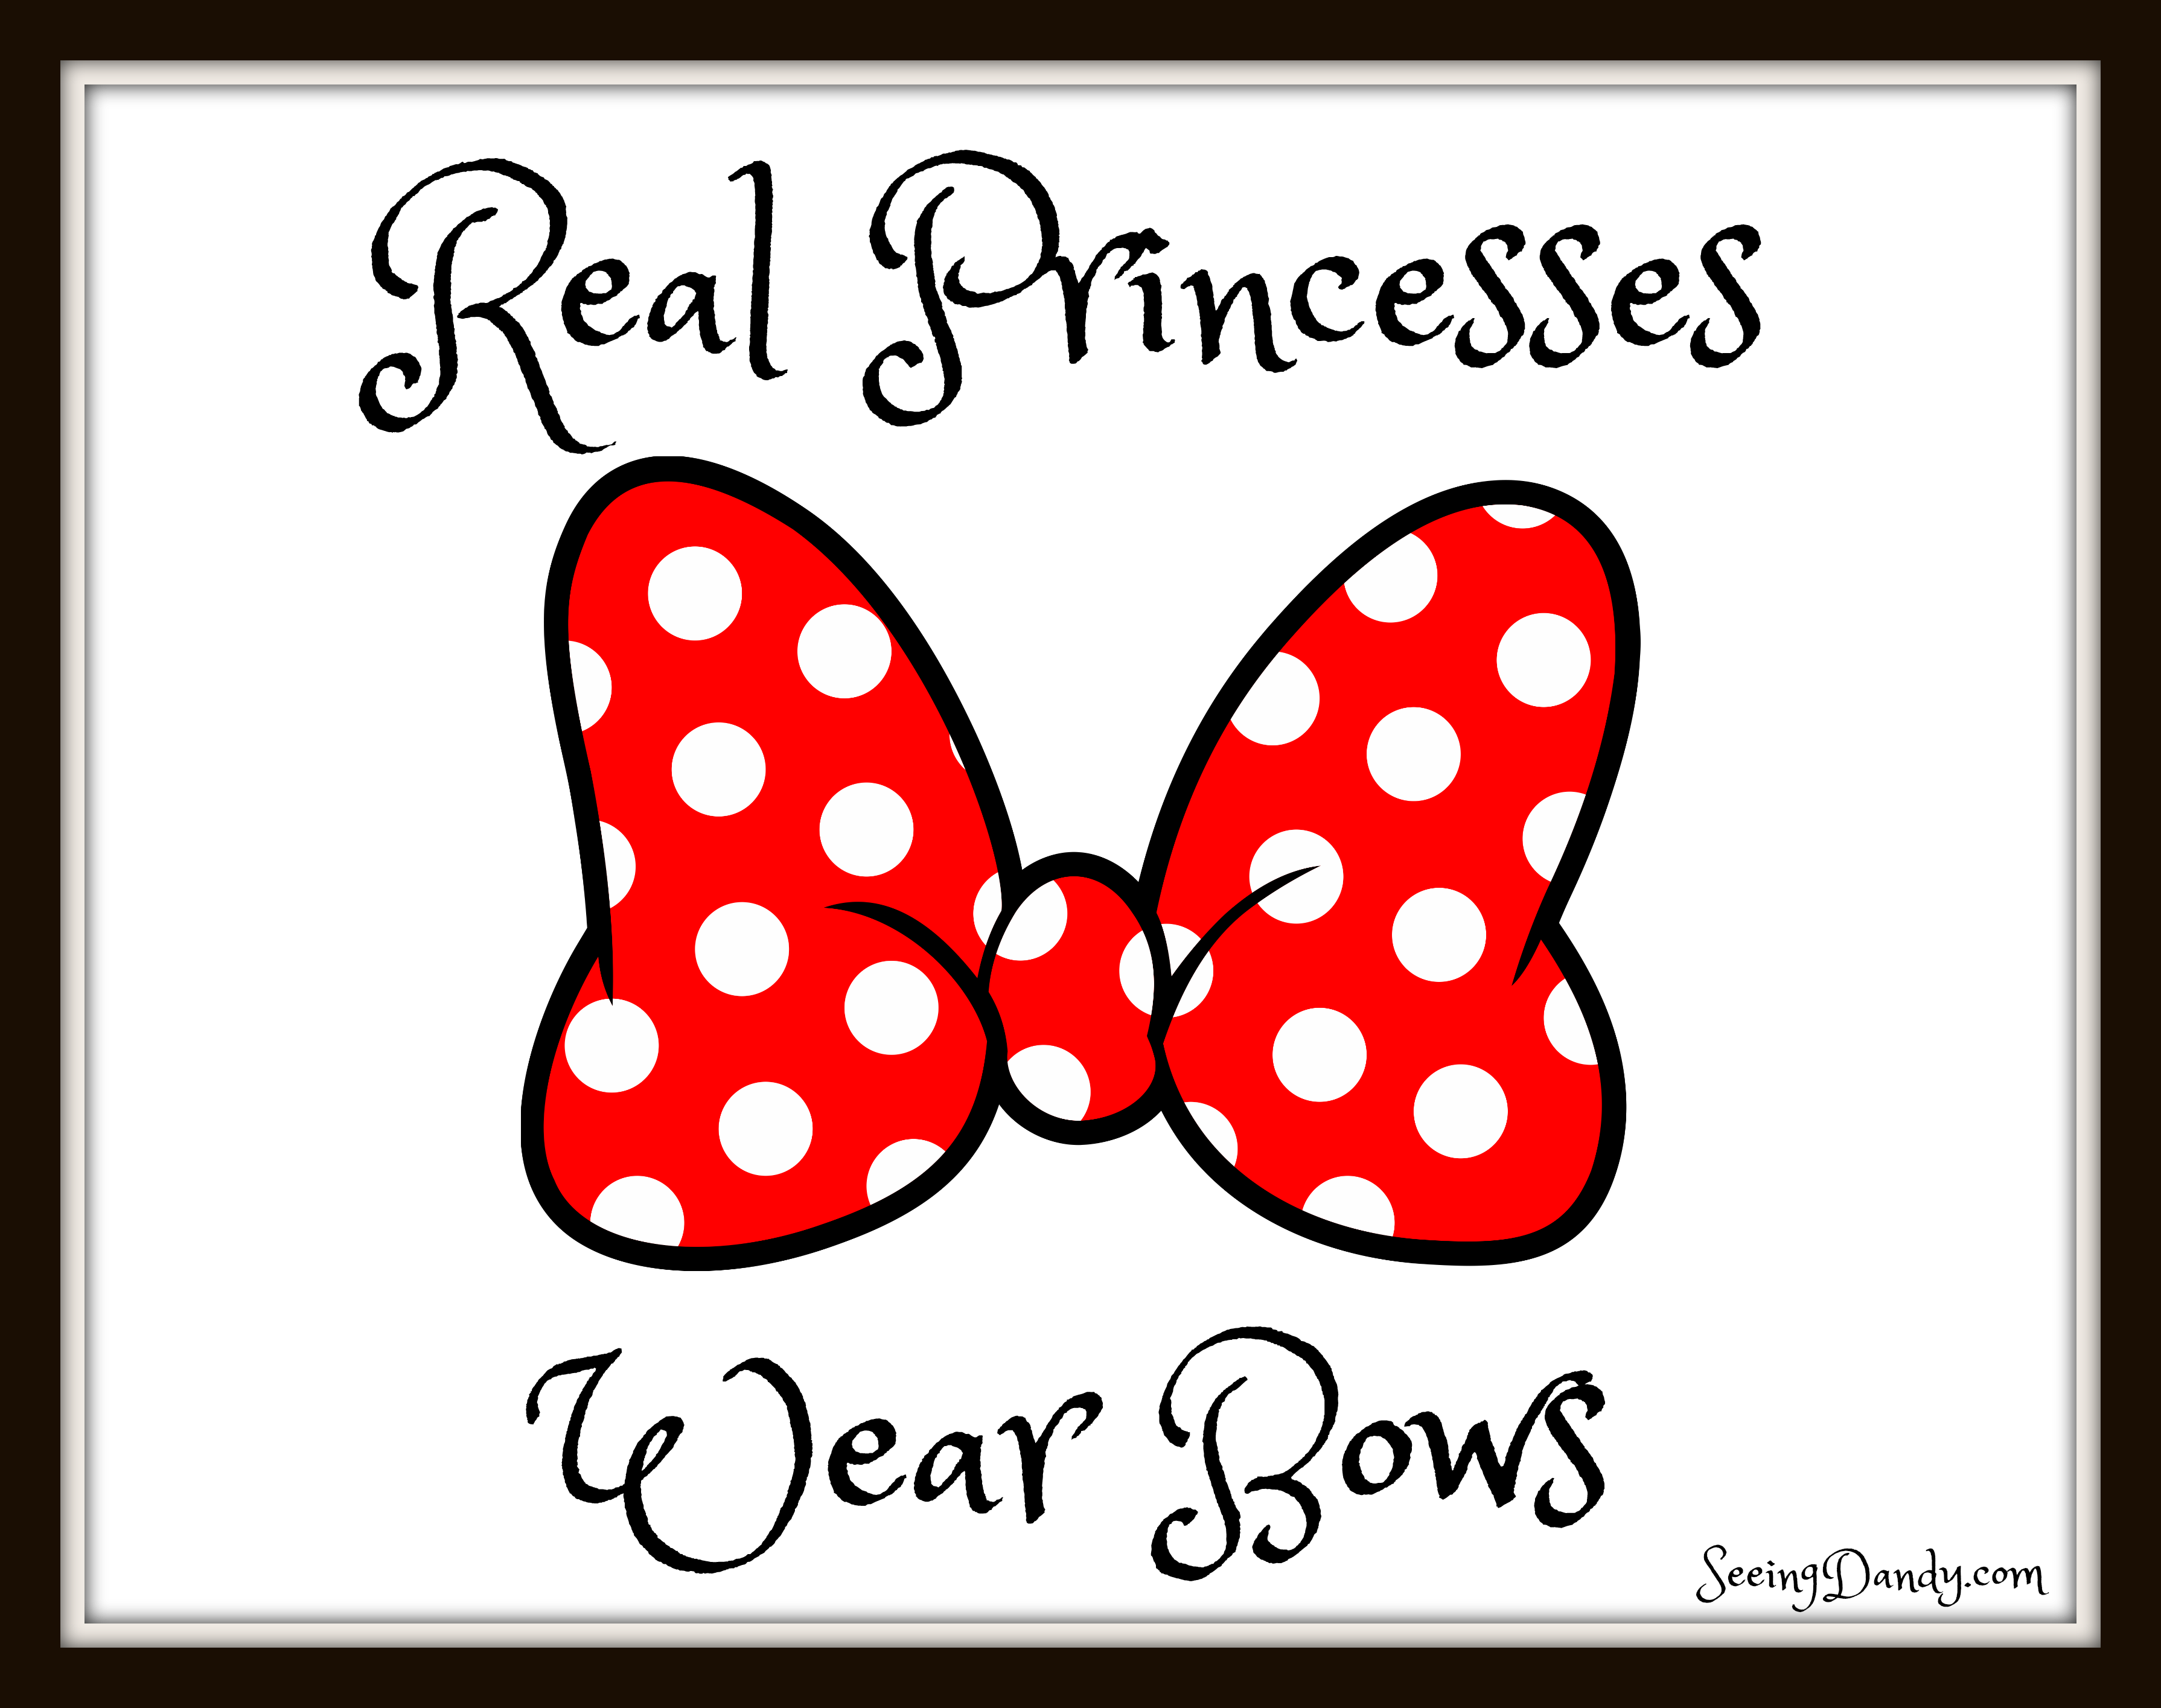 Real princesses wear bows Minnie Mouse bow printable wall art.